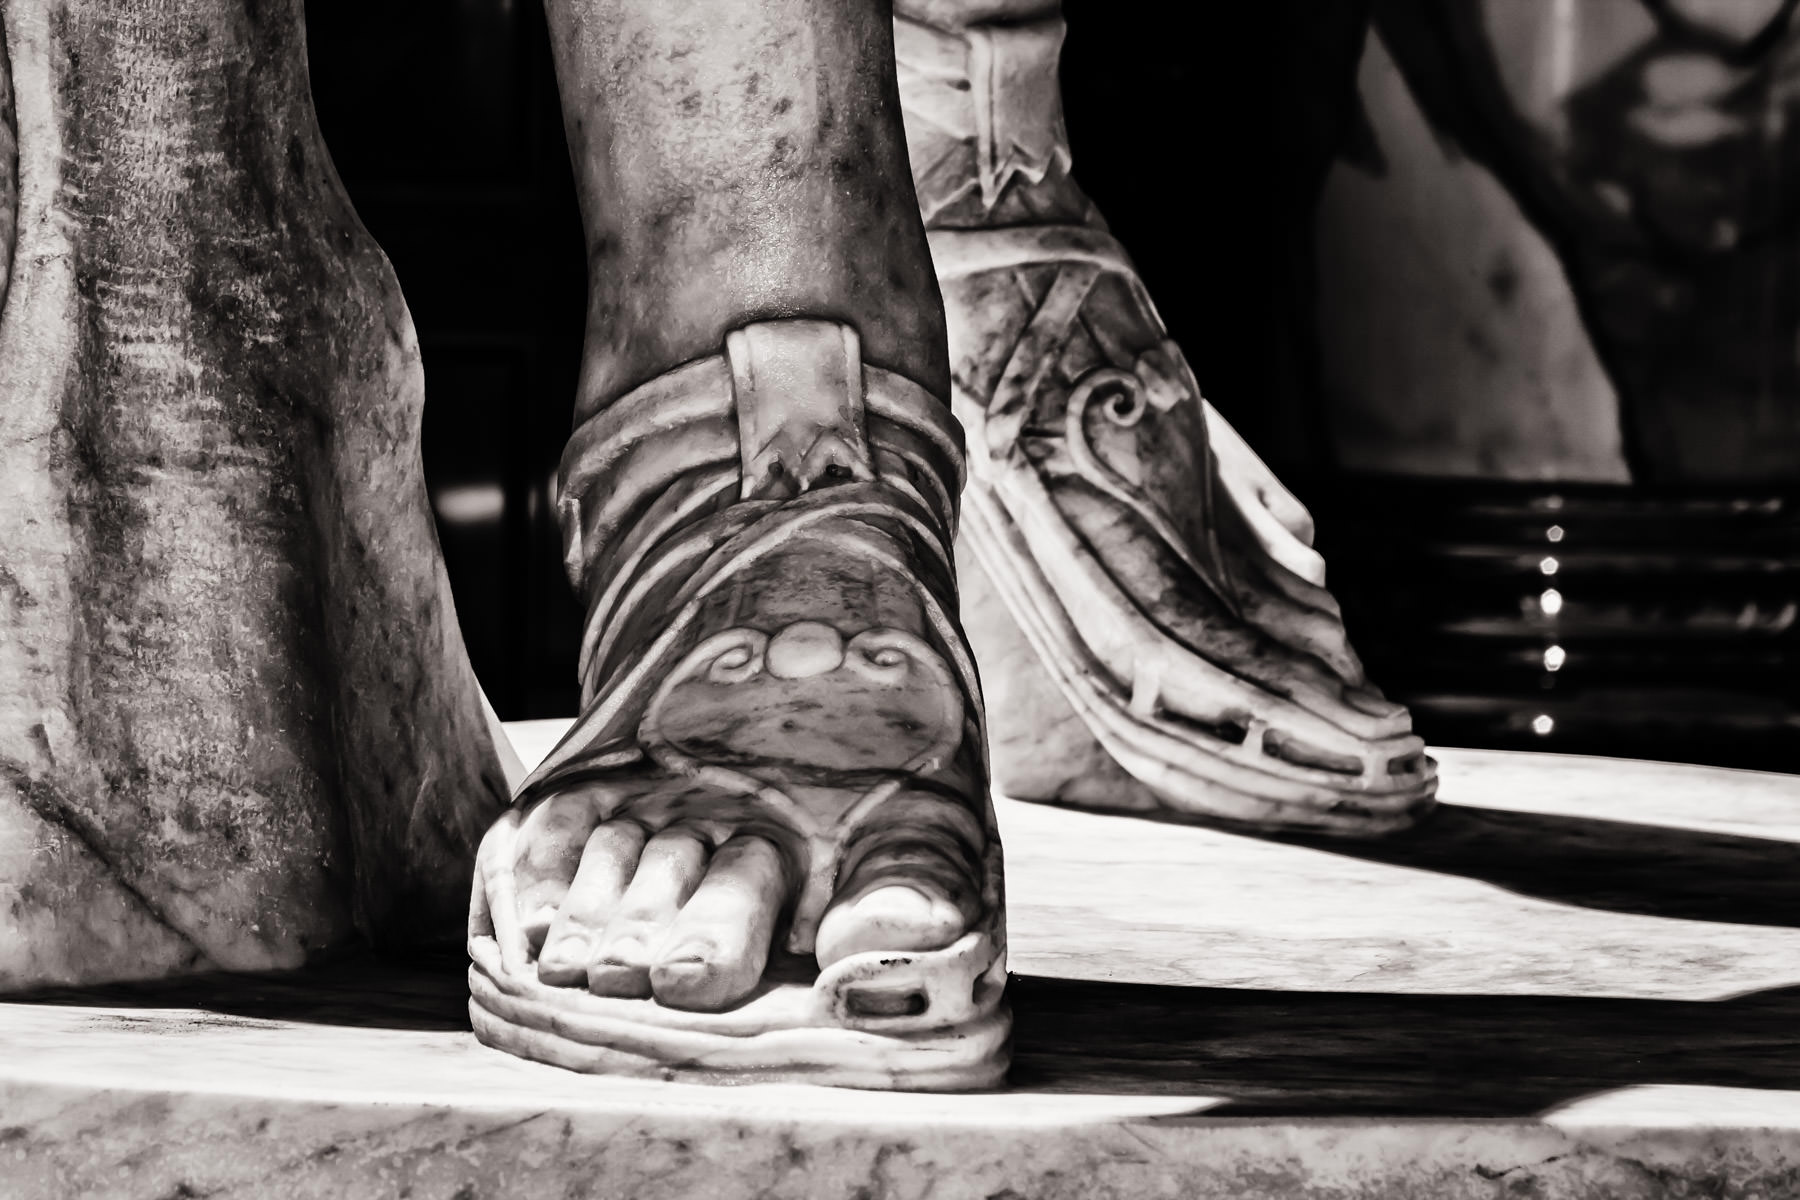 Detail of a statue's feet at Caesars Palace, Las Vegas.